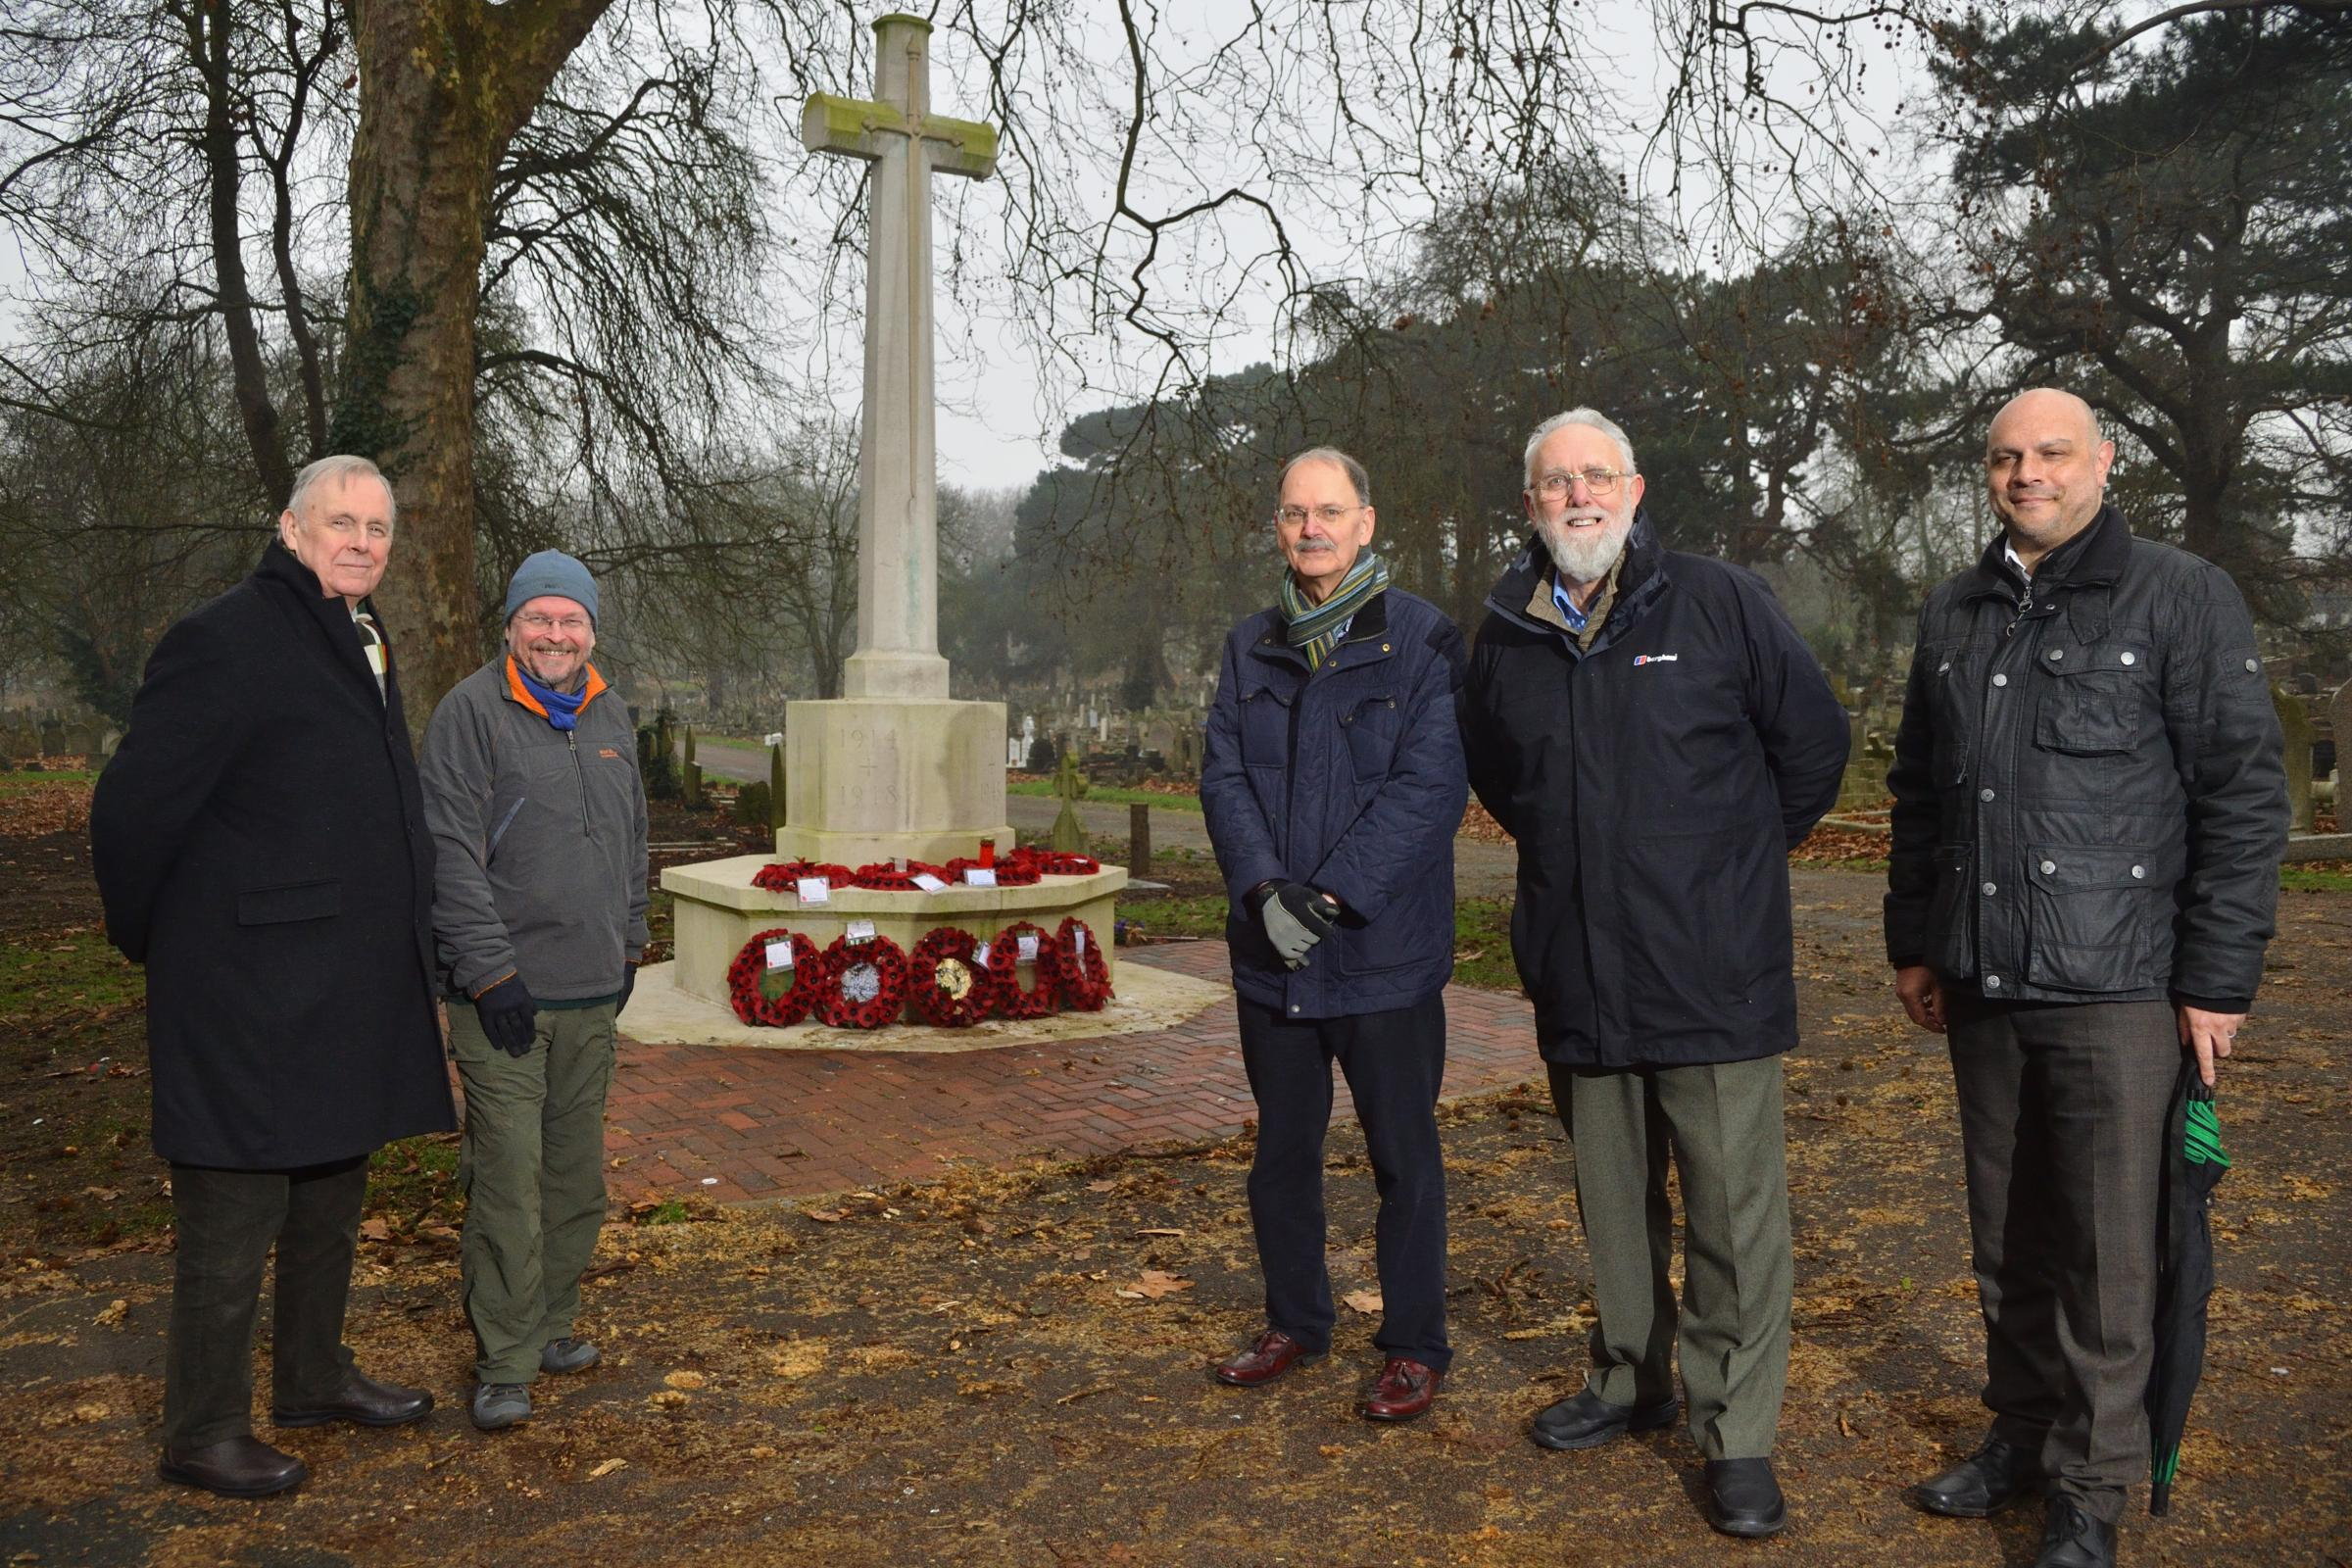 Left to right: Malcolm Doolin, Chris Hunt, Mark Carroll, Roy Berg and Tusar SenGupta at the Cross of Sacrifice in Chingford Mount Cemetery.